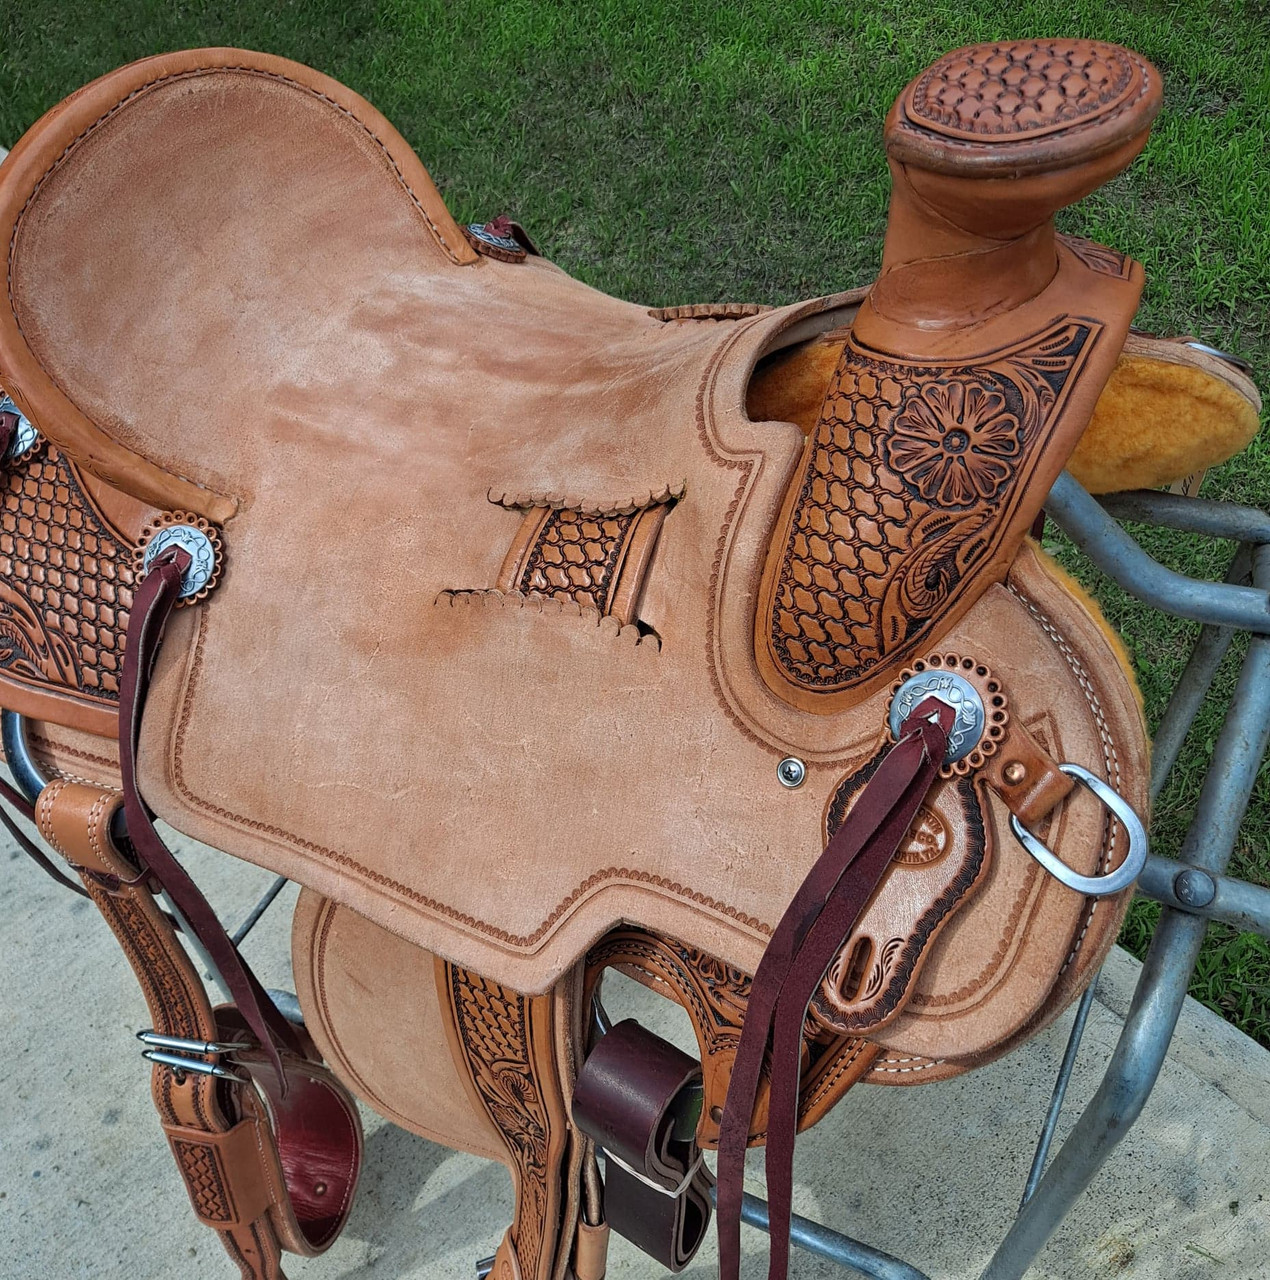 """New Wade Saddle by Fort Worth Saddle Co with 17 inch seat. Hermann Oak leather in light oil antique. 3"""" monel stirrups. Tooled exposed stirrup leathers. Leather latigo and offside. Flank cinch included. Gullet size is 6.75 inch, weight is 38lbs, and skirt is 28.5 inch. Made in USA. Limited lifetime warranty.  S1300"""